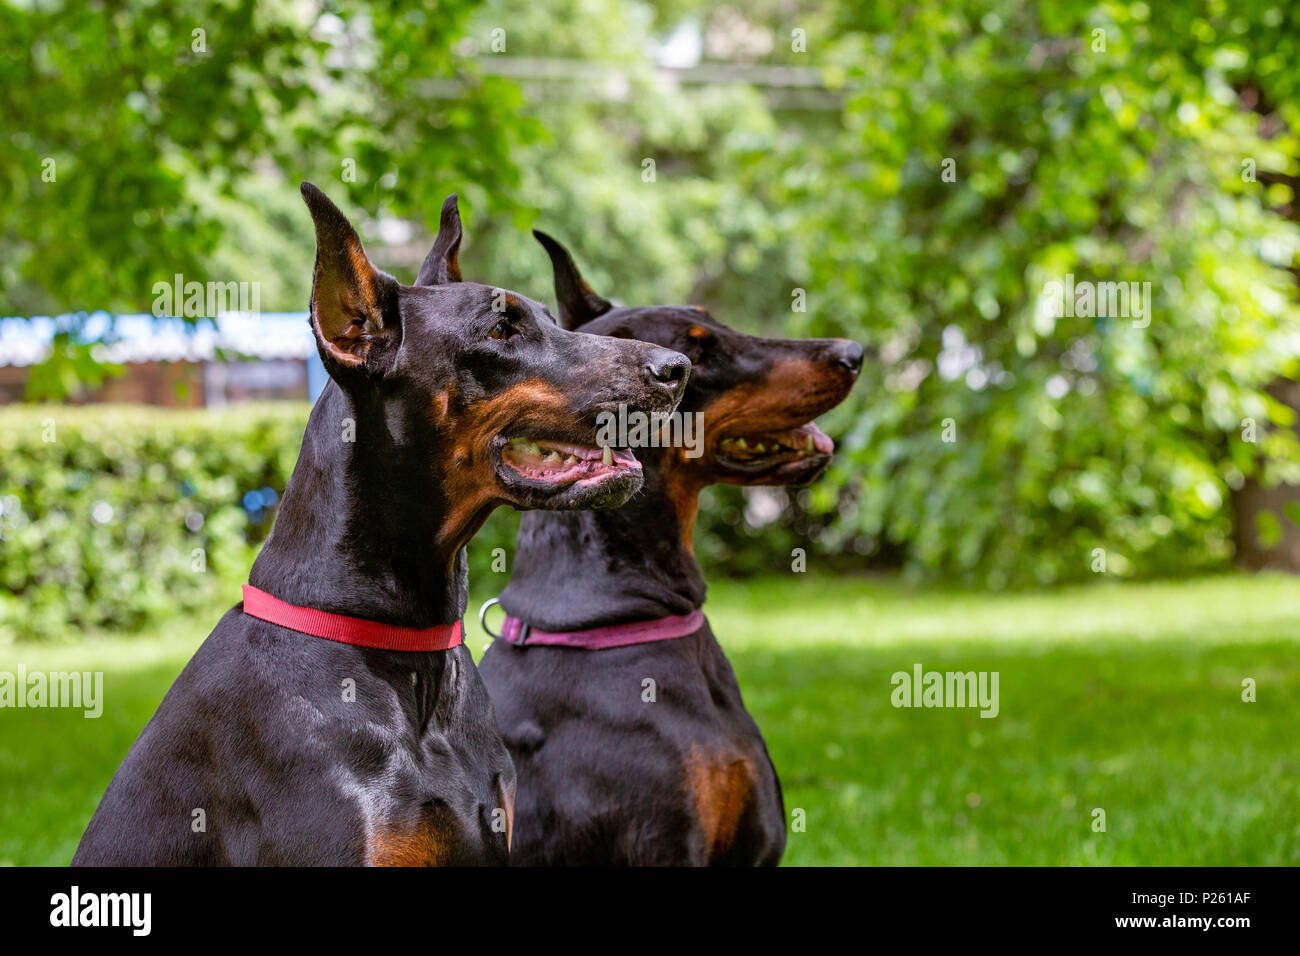 two black dobermans sitting on the grass - Stock Image